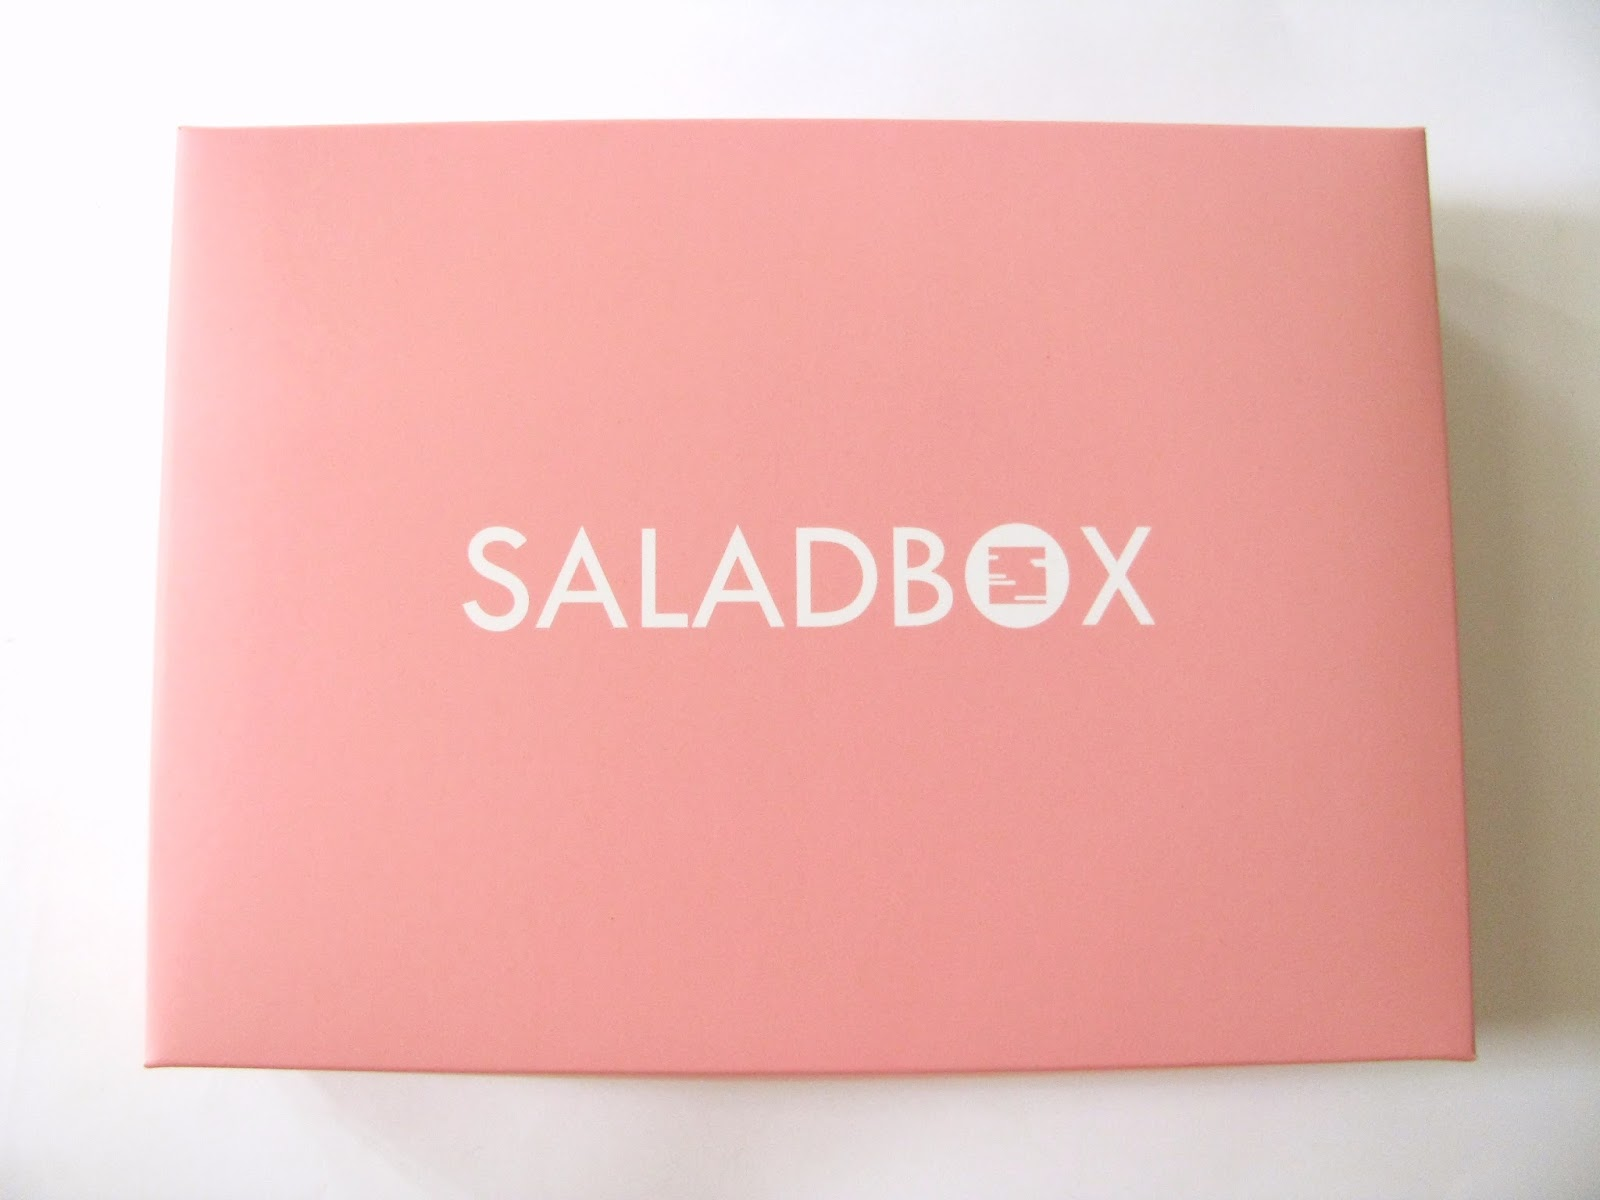 http://www.lightsandlatte.com/2016/04/saladbox-ph-x-benefit-cosmetics-march.html